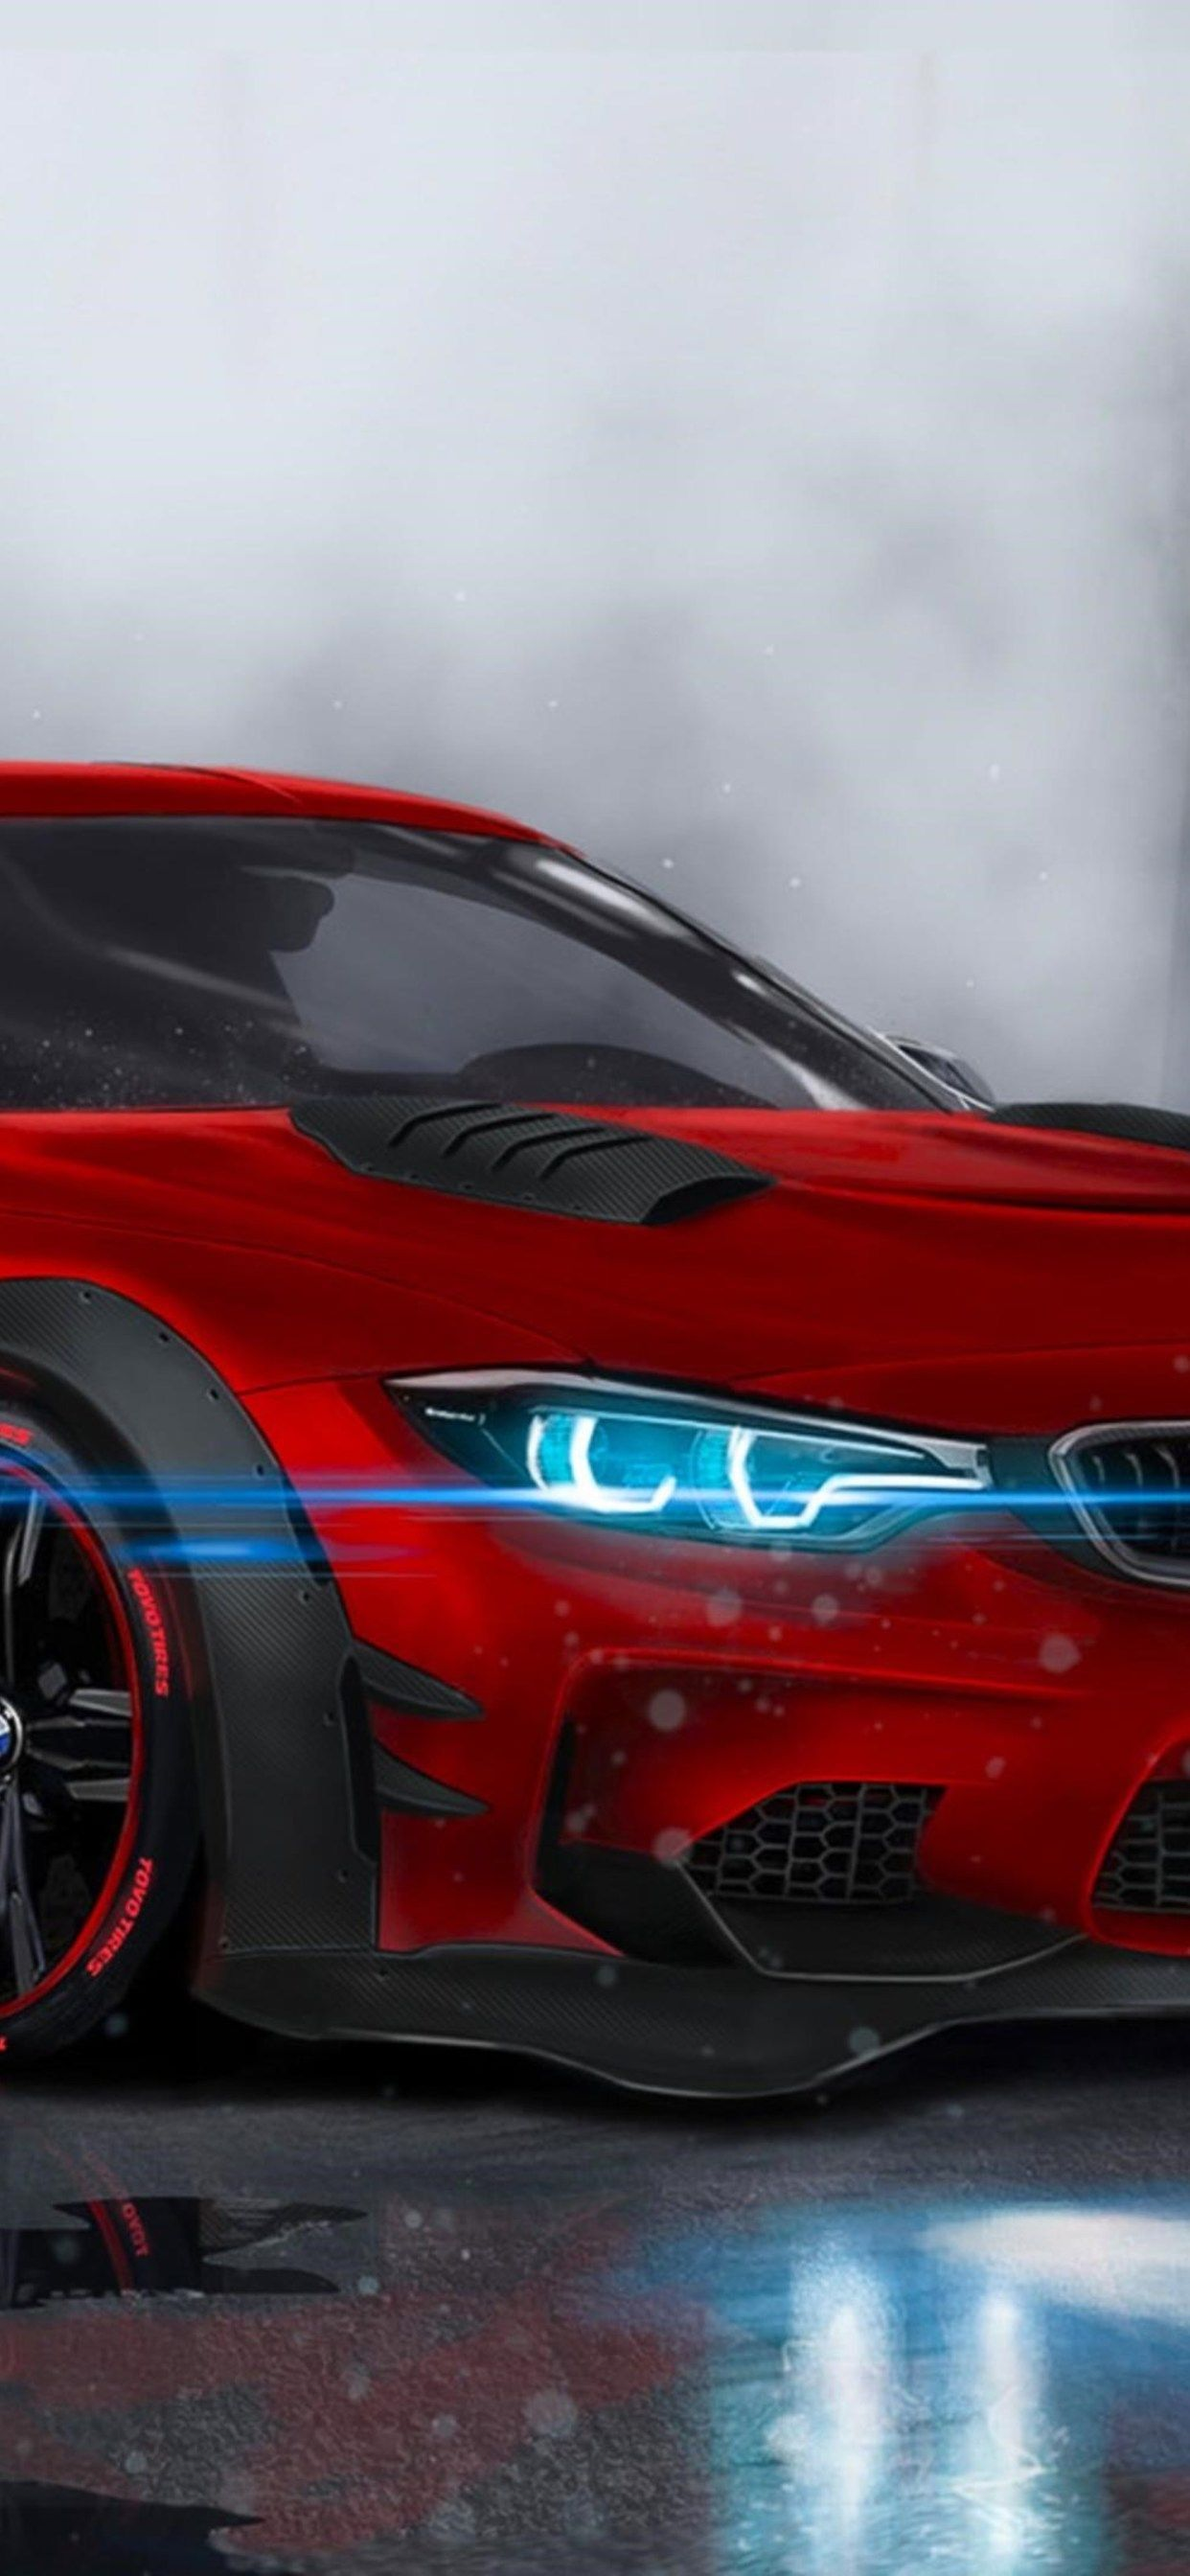 Sports Cars That Start With M Luxury And Expensive Cars With Images Bmw Car In The World Bmw Wallpapers